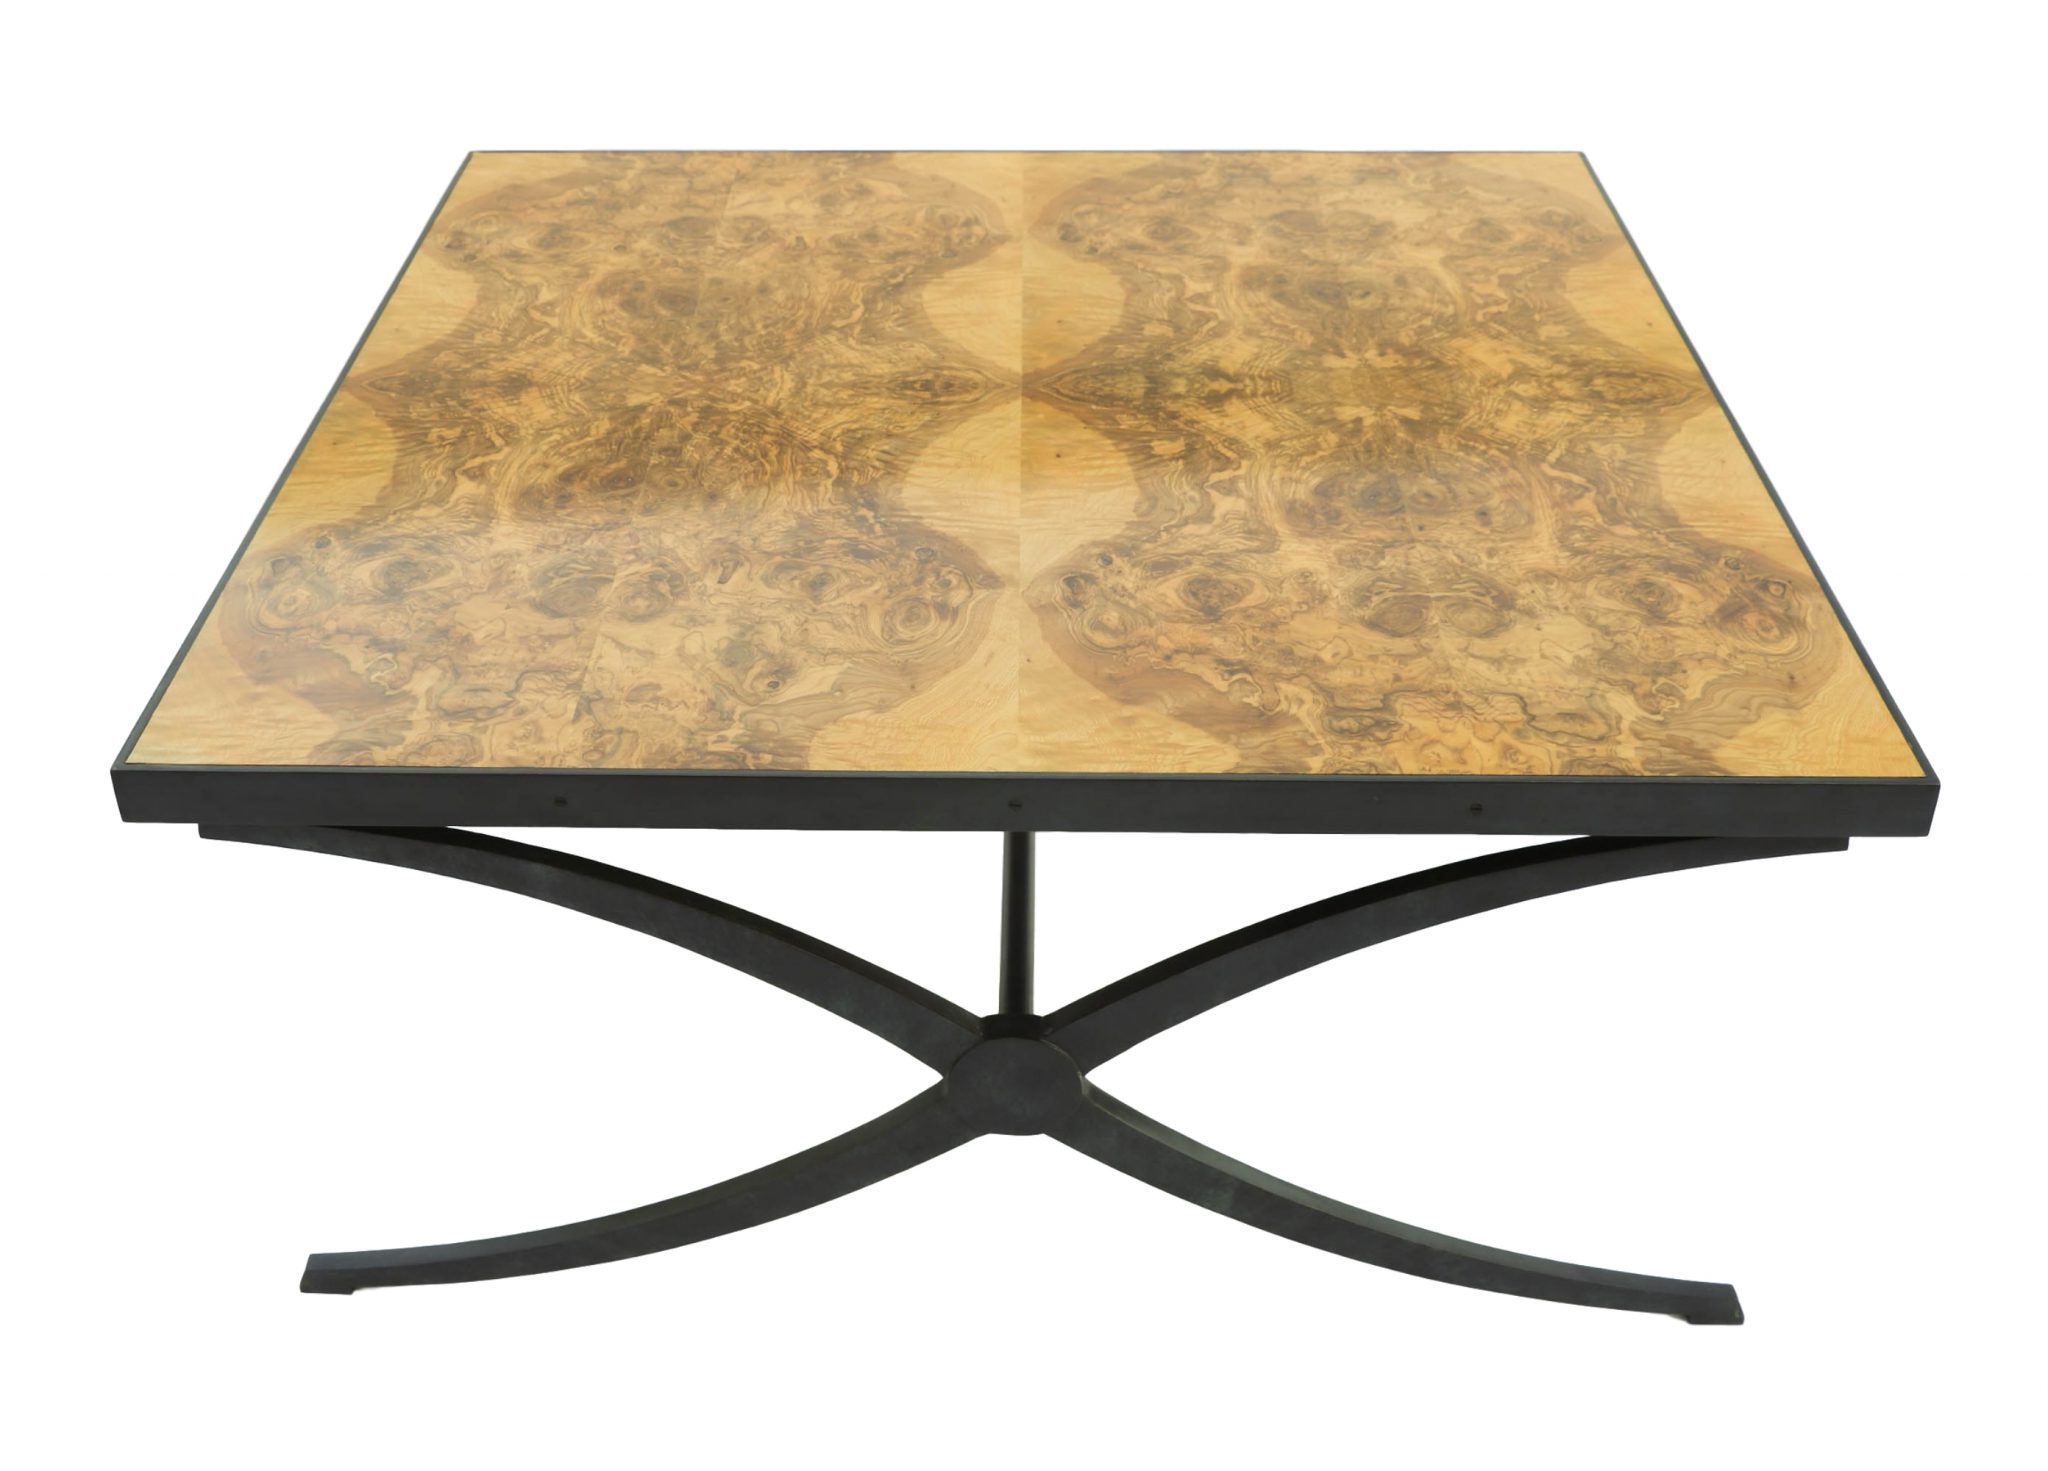 theodore alexander coffee table 22